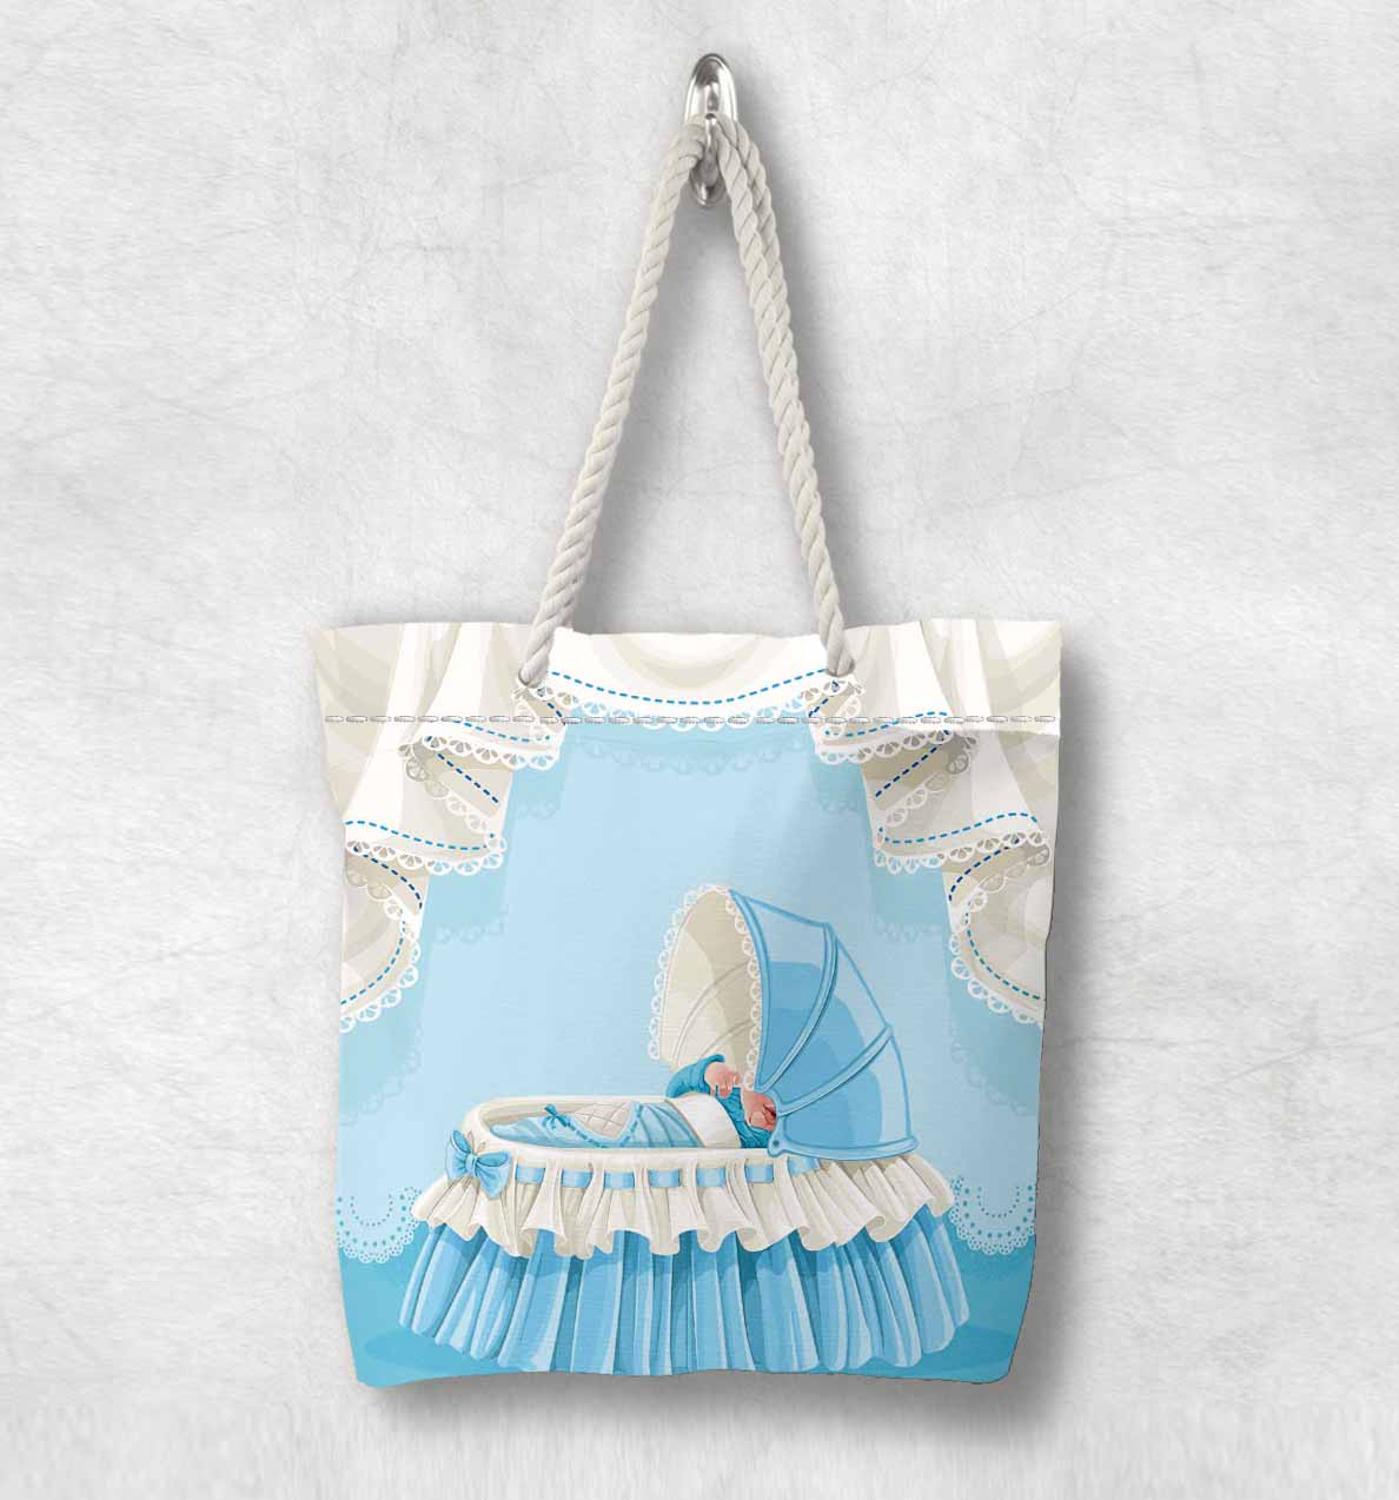 Else Blue White Little Baby Cradle New Fashion White Rope Handle Canvas Bag  Cartoon Print Zippered Tote Bag Shoulder Bag